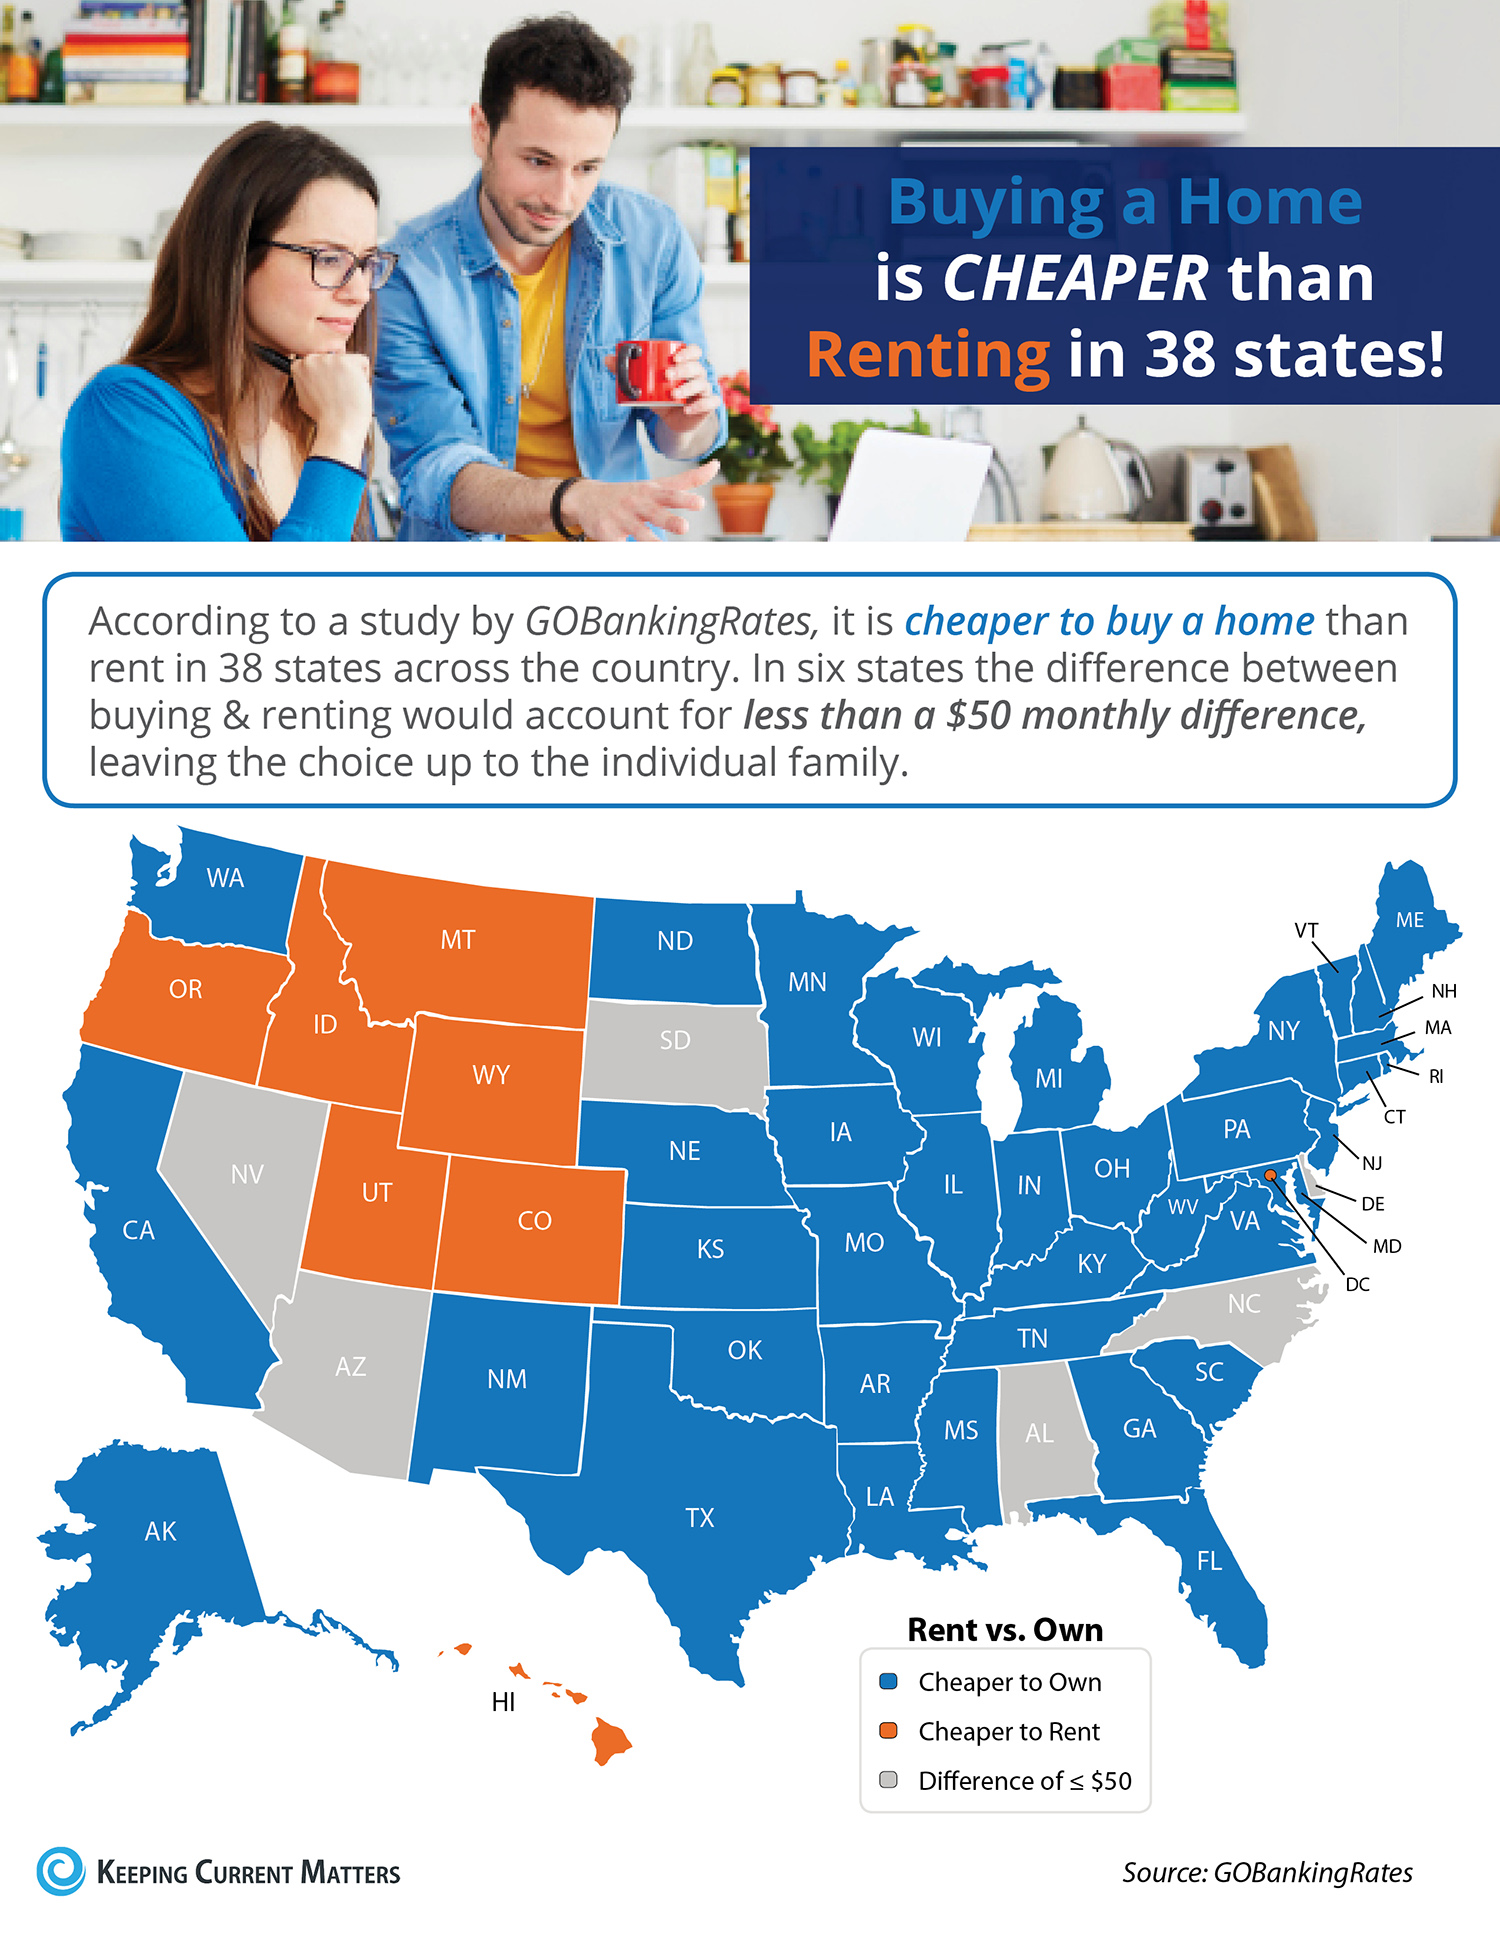 Buying a Home is Cheaper than Renting in 38 States! [INFOGRAPHIC] | Keeping Current Matters